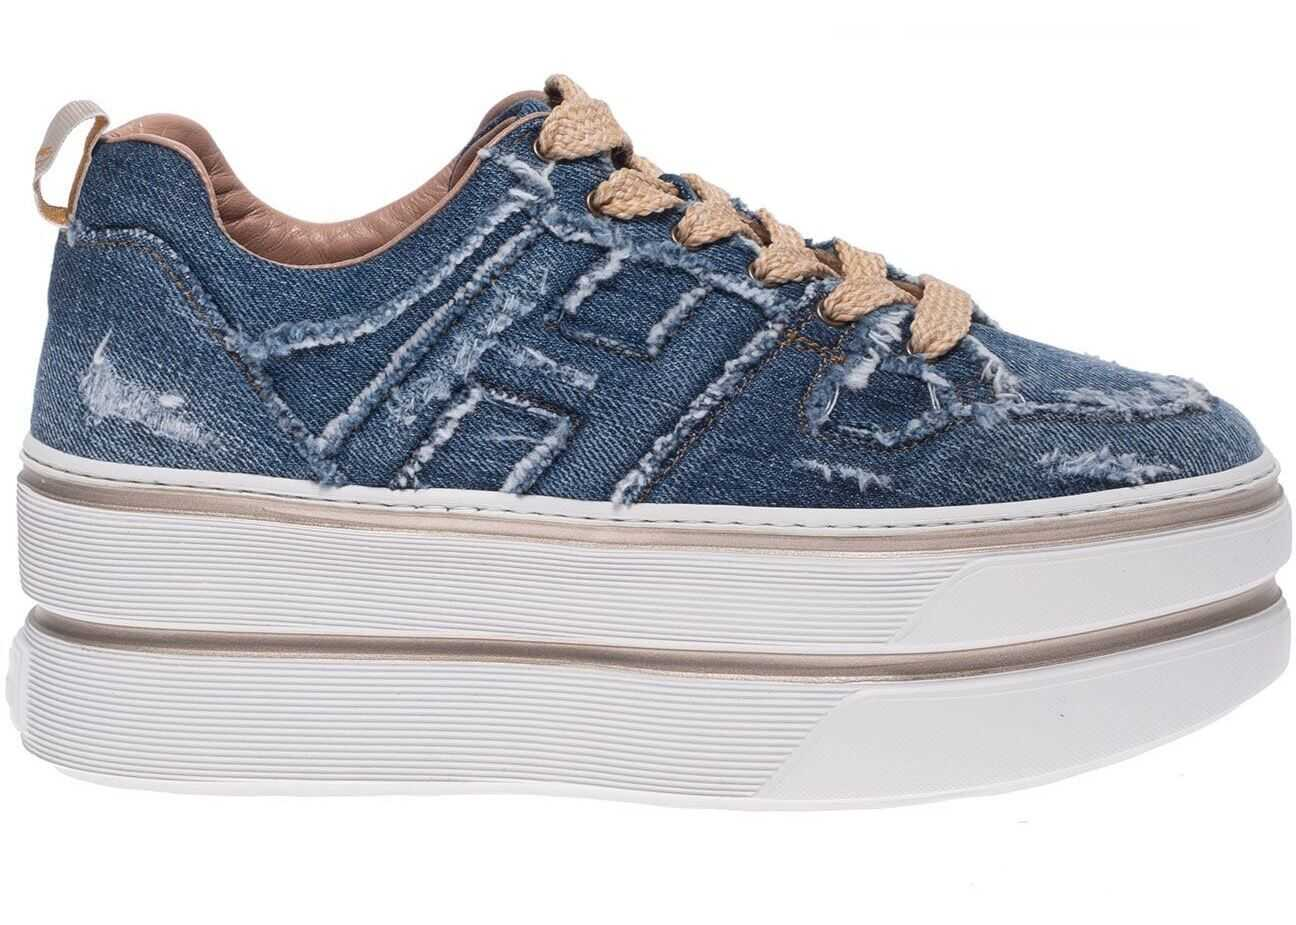 Hogan H449 Maxi Sneakers In Blue Jeans Color Blue